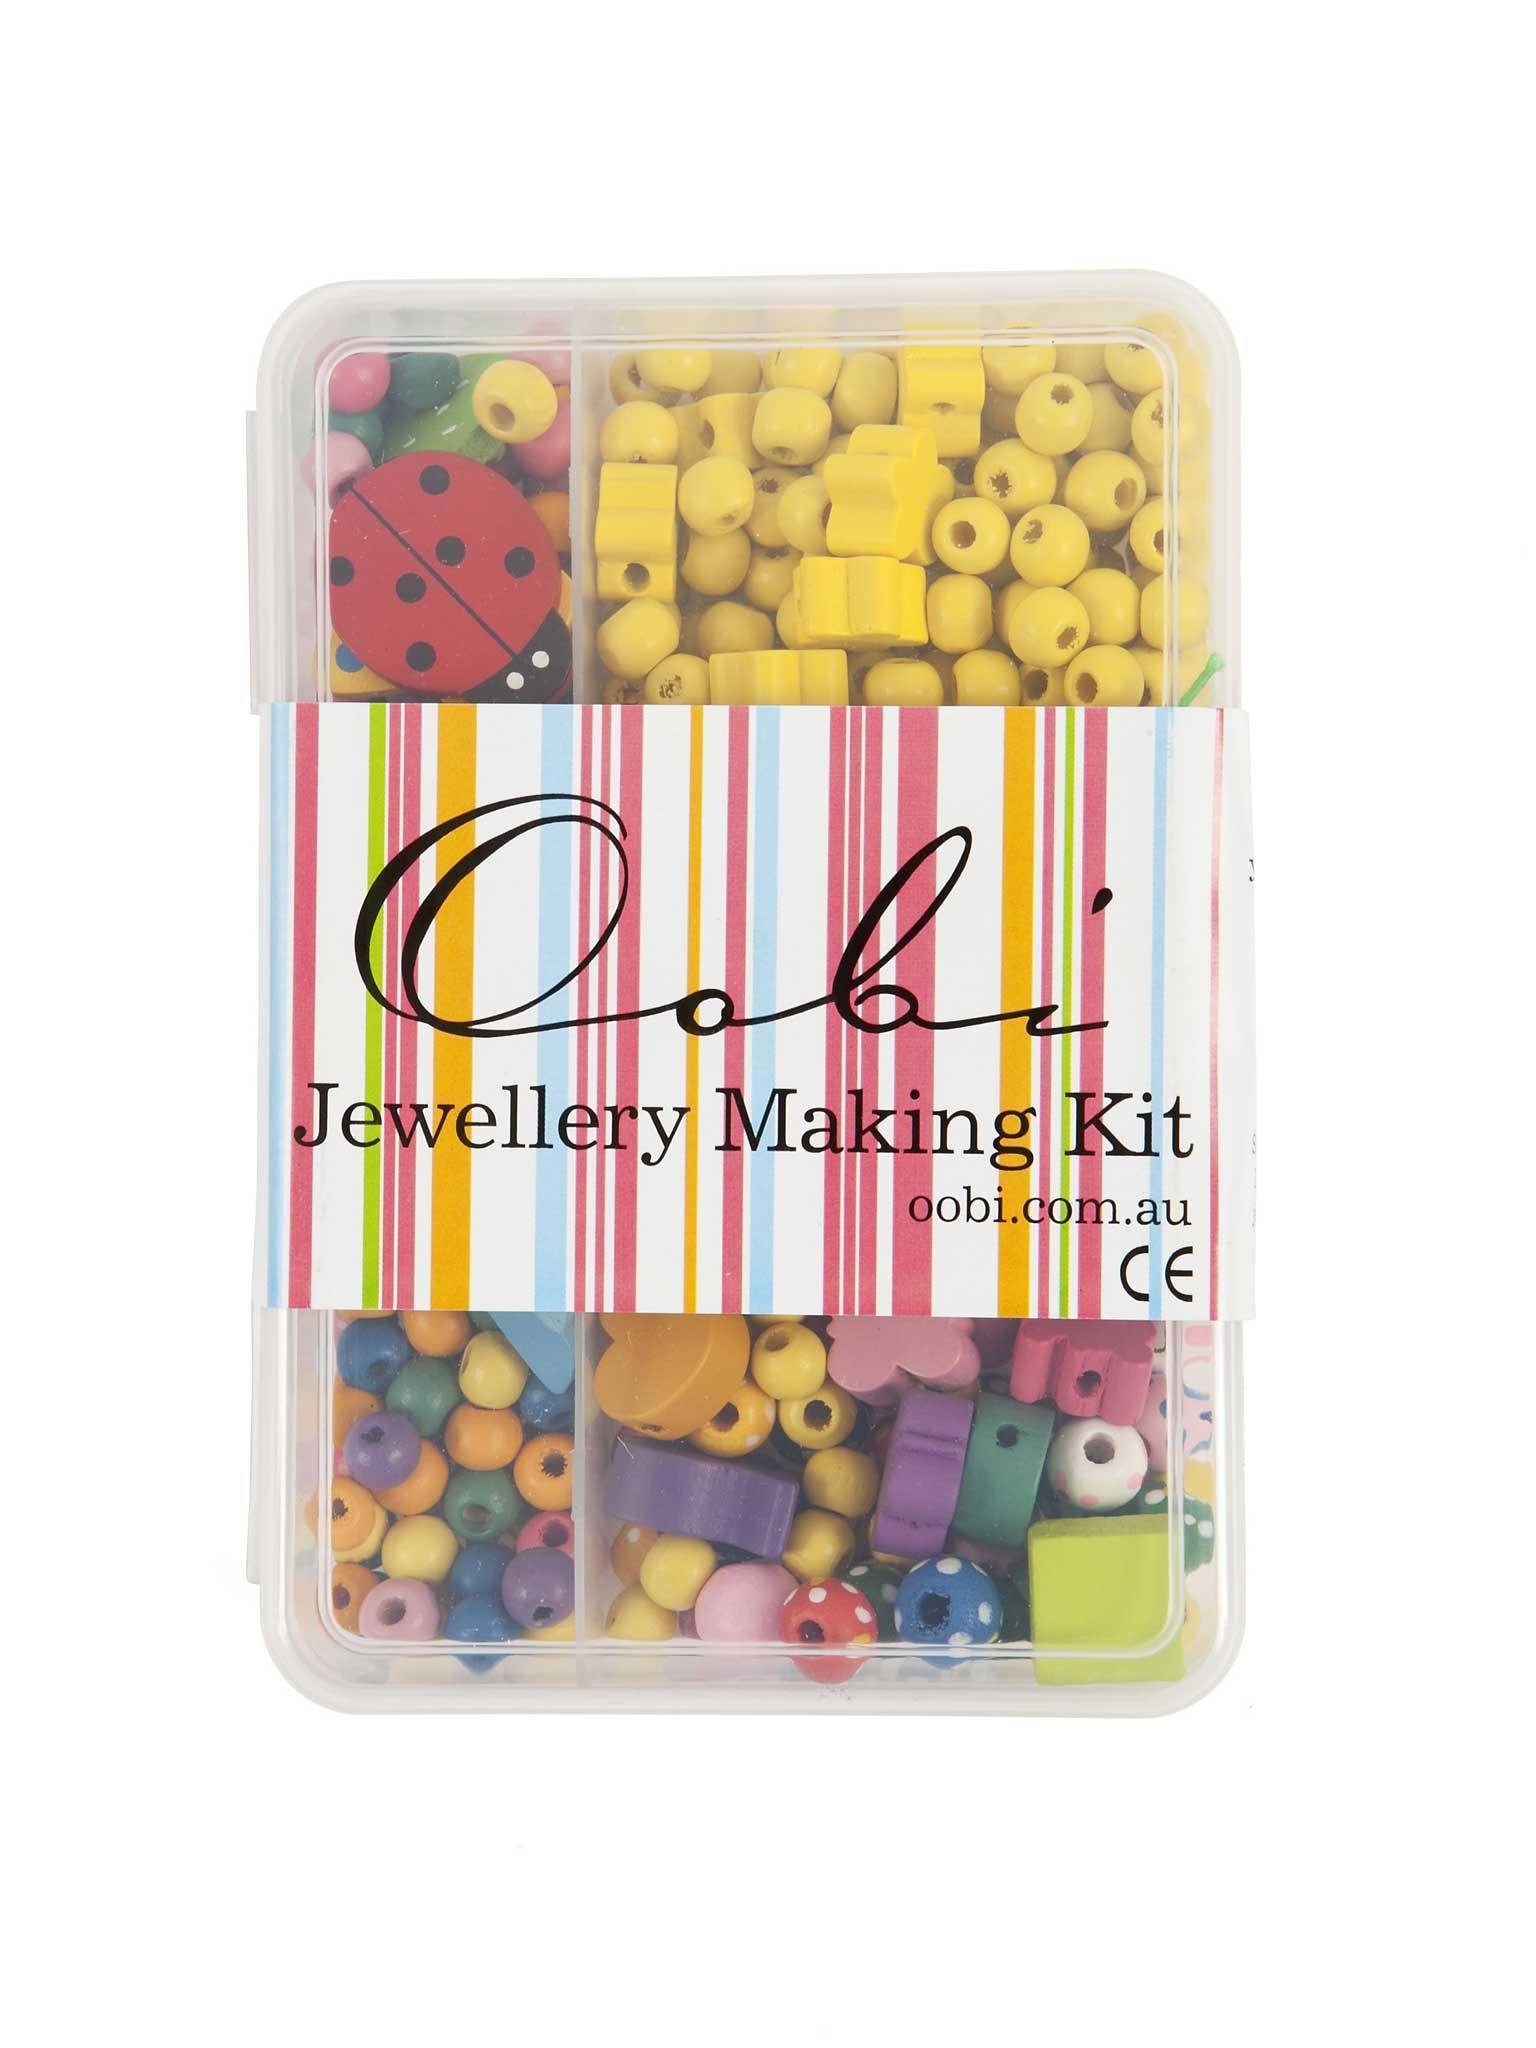 Jewellery Making Kit, Accessories - Oobi Girls Kid Fashion